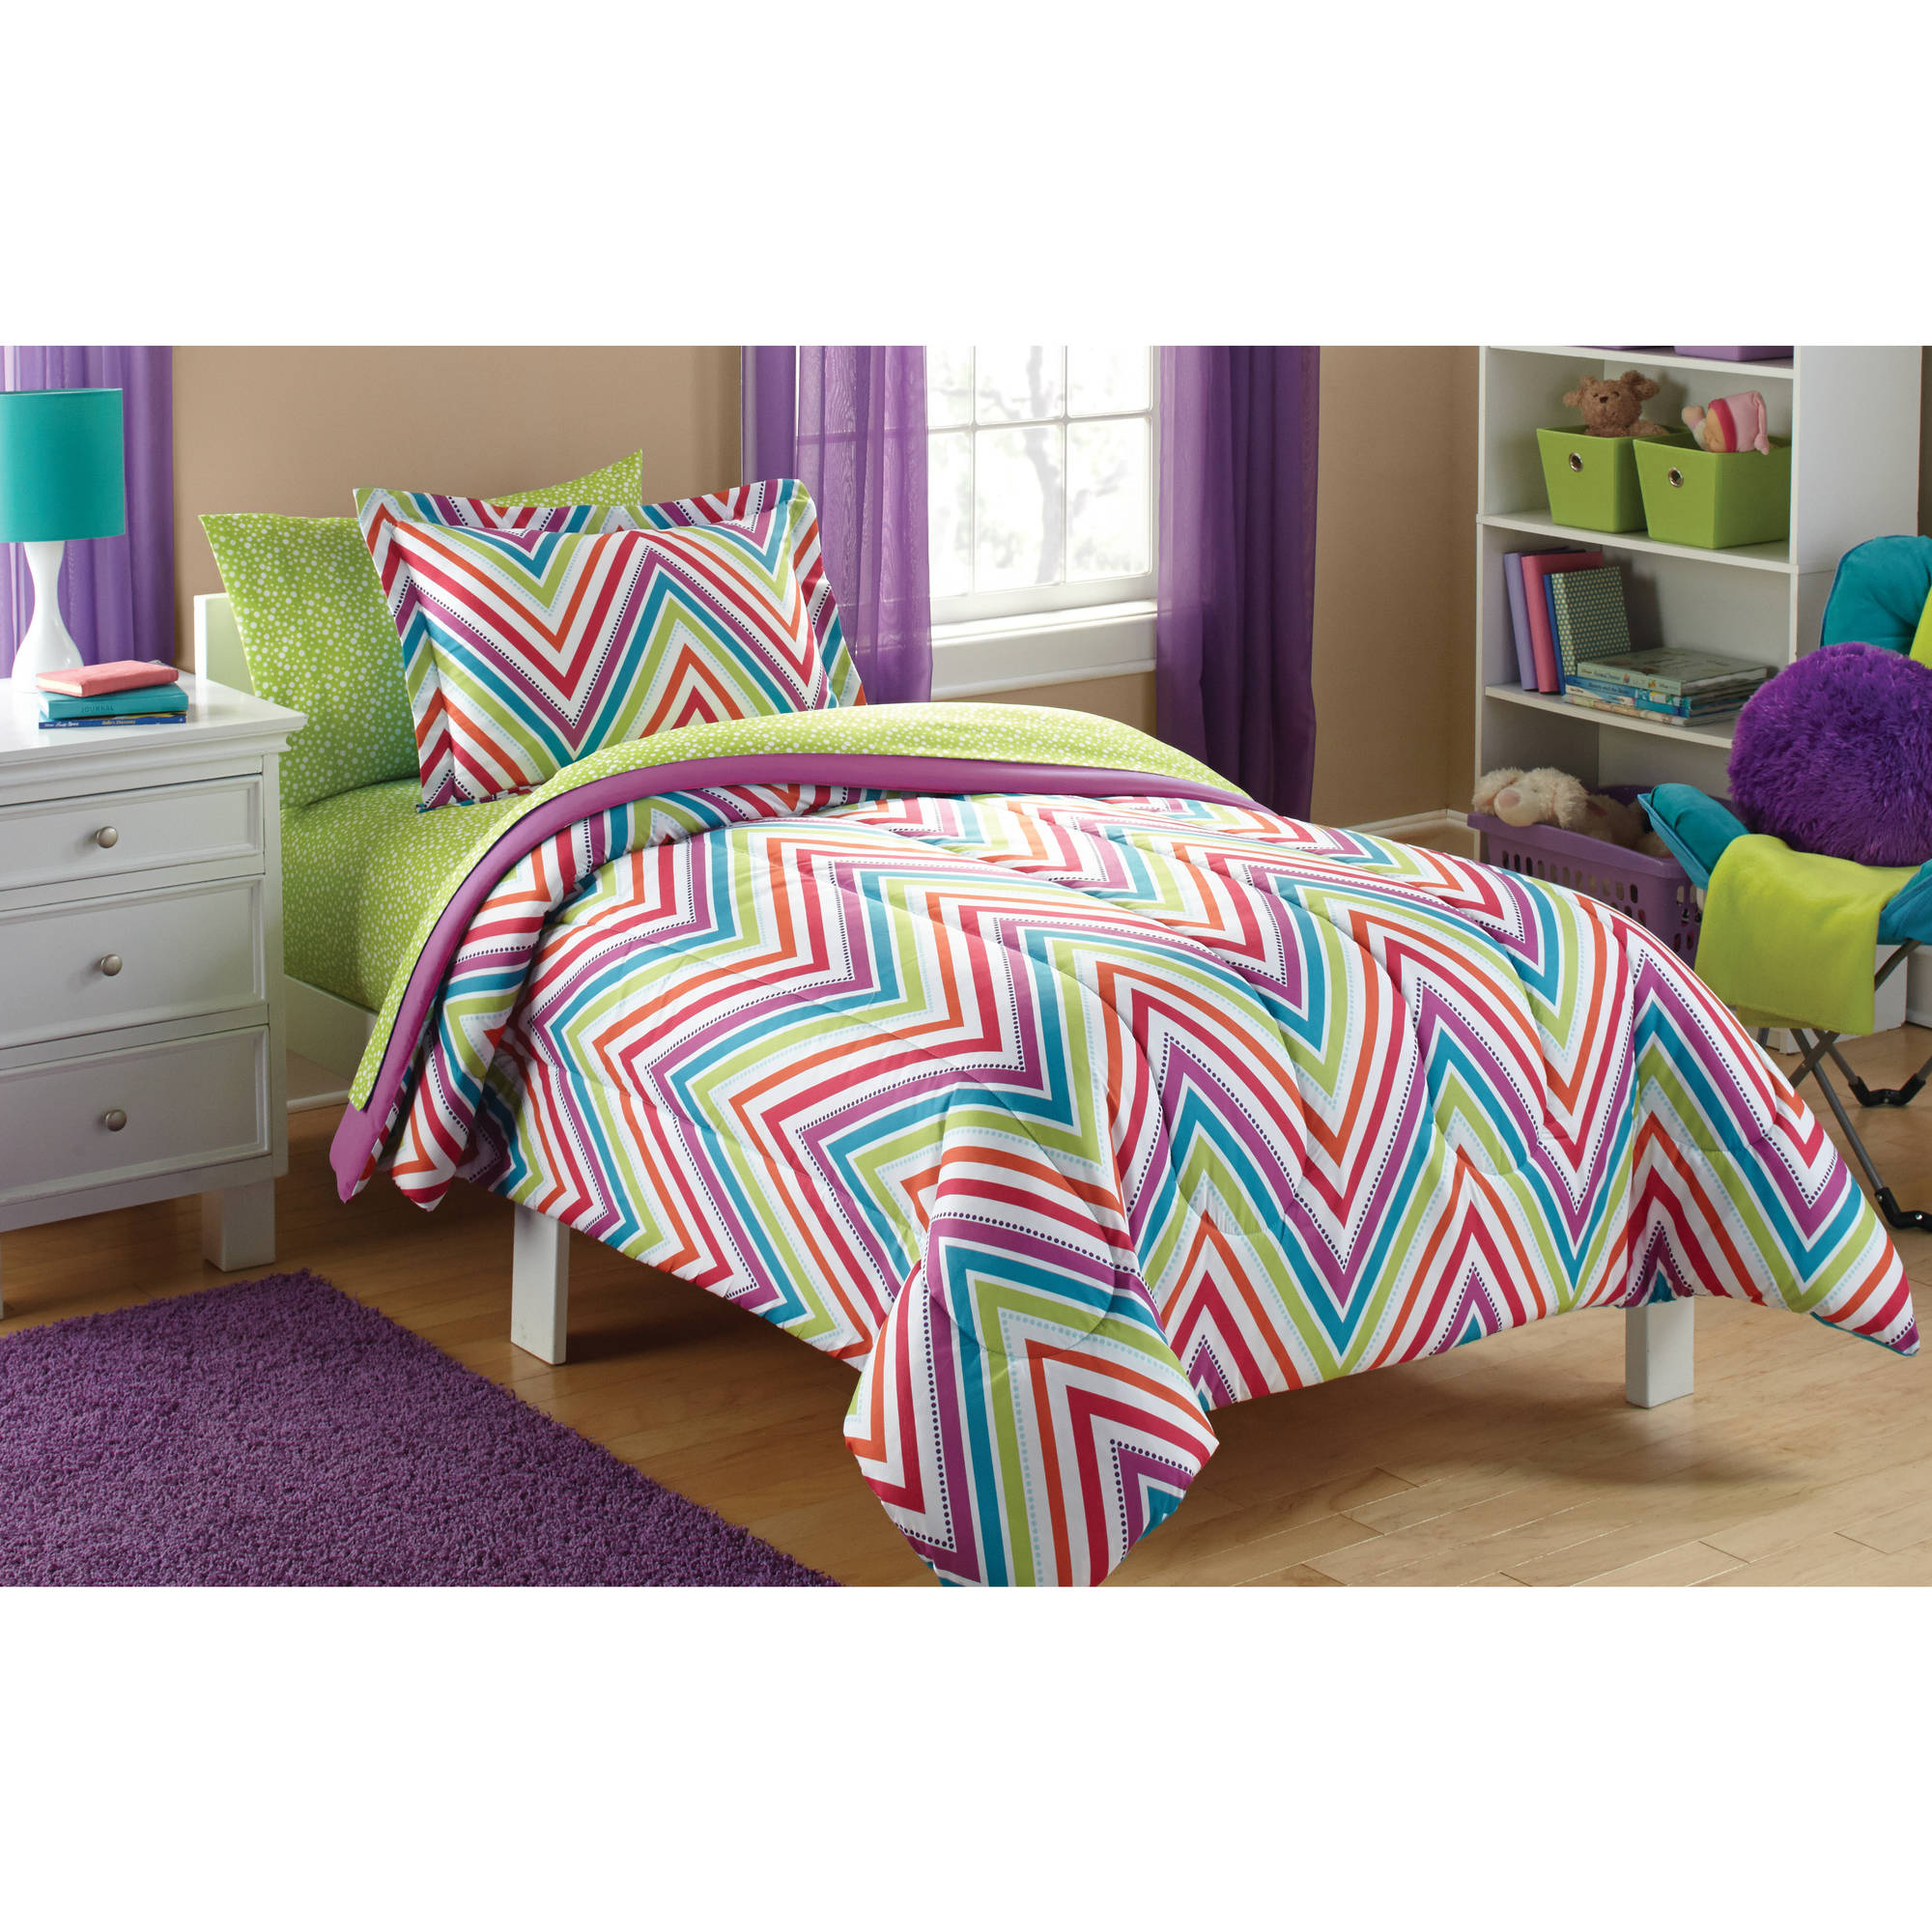 Mainstays Kids' Chevron Coordinated Bed in a Bag by Keeco